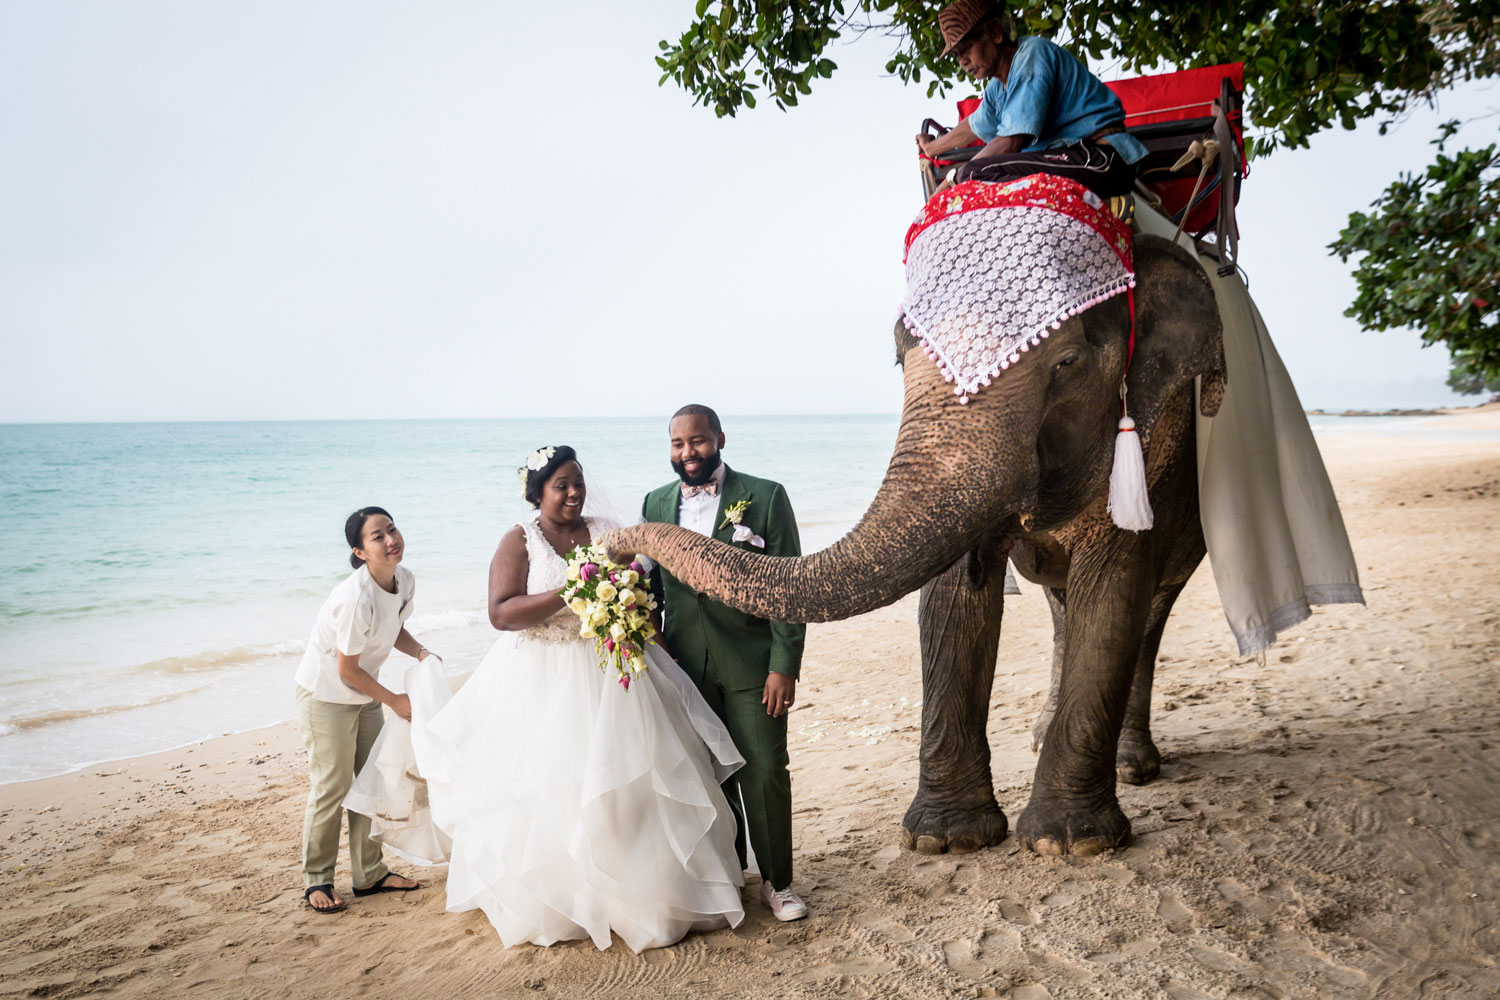 Bride and groom on Thailand beach with elephant